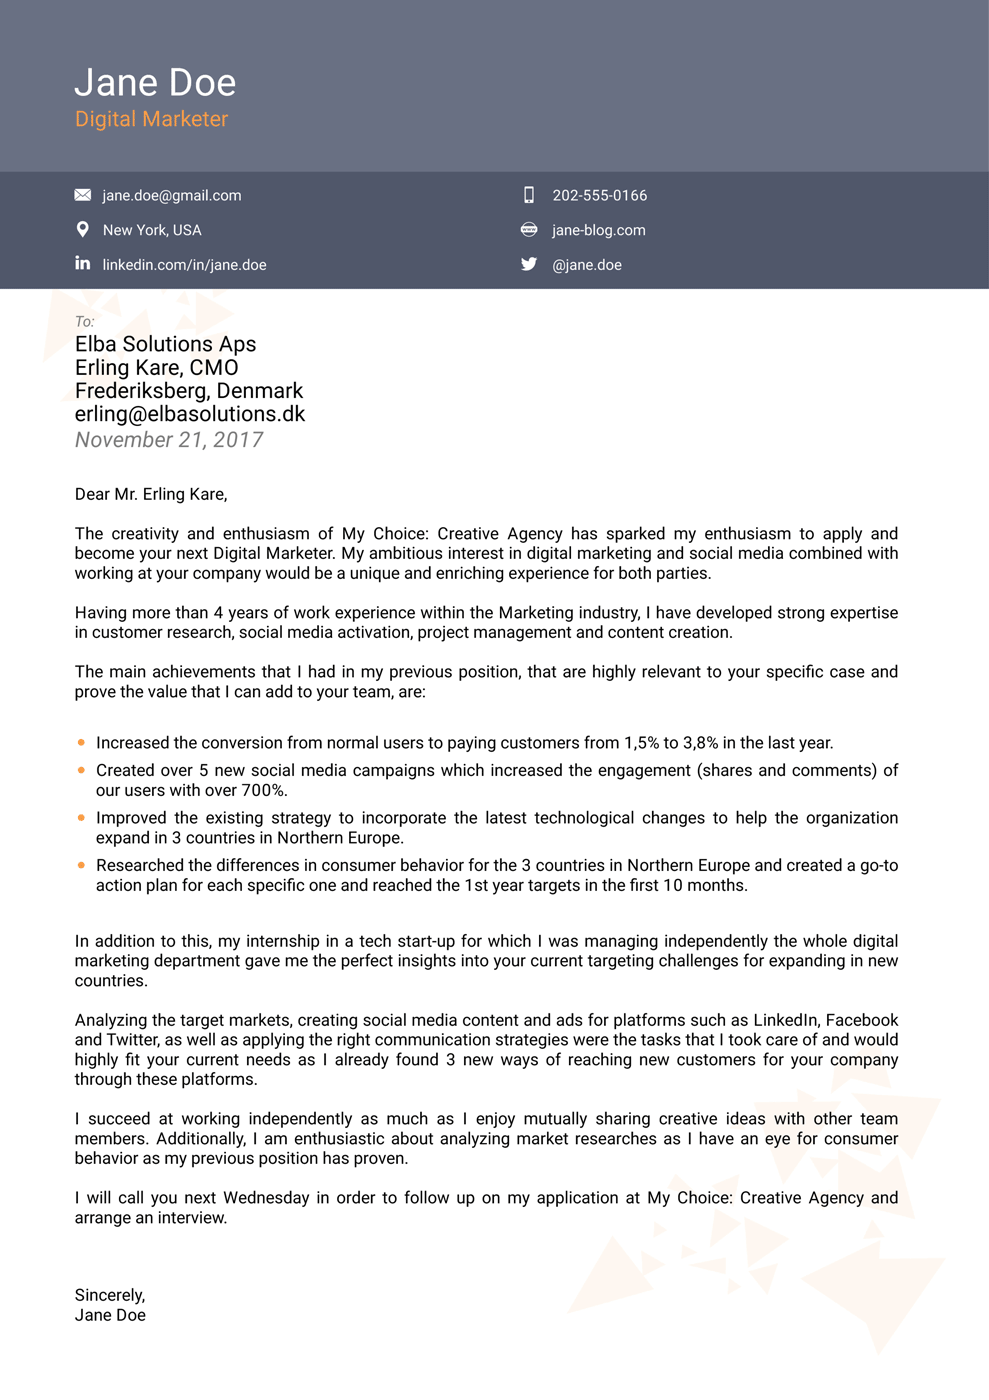 Cover Letter Template On Pages